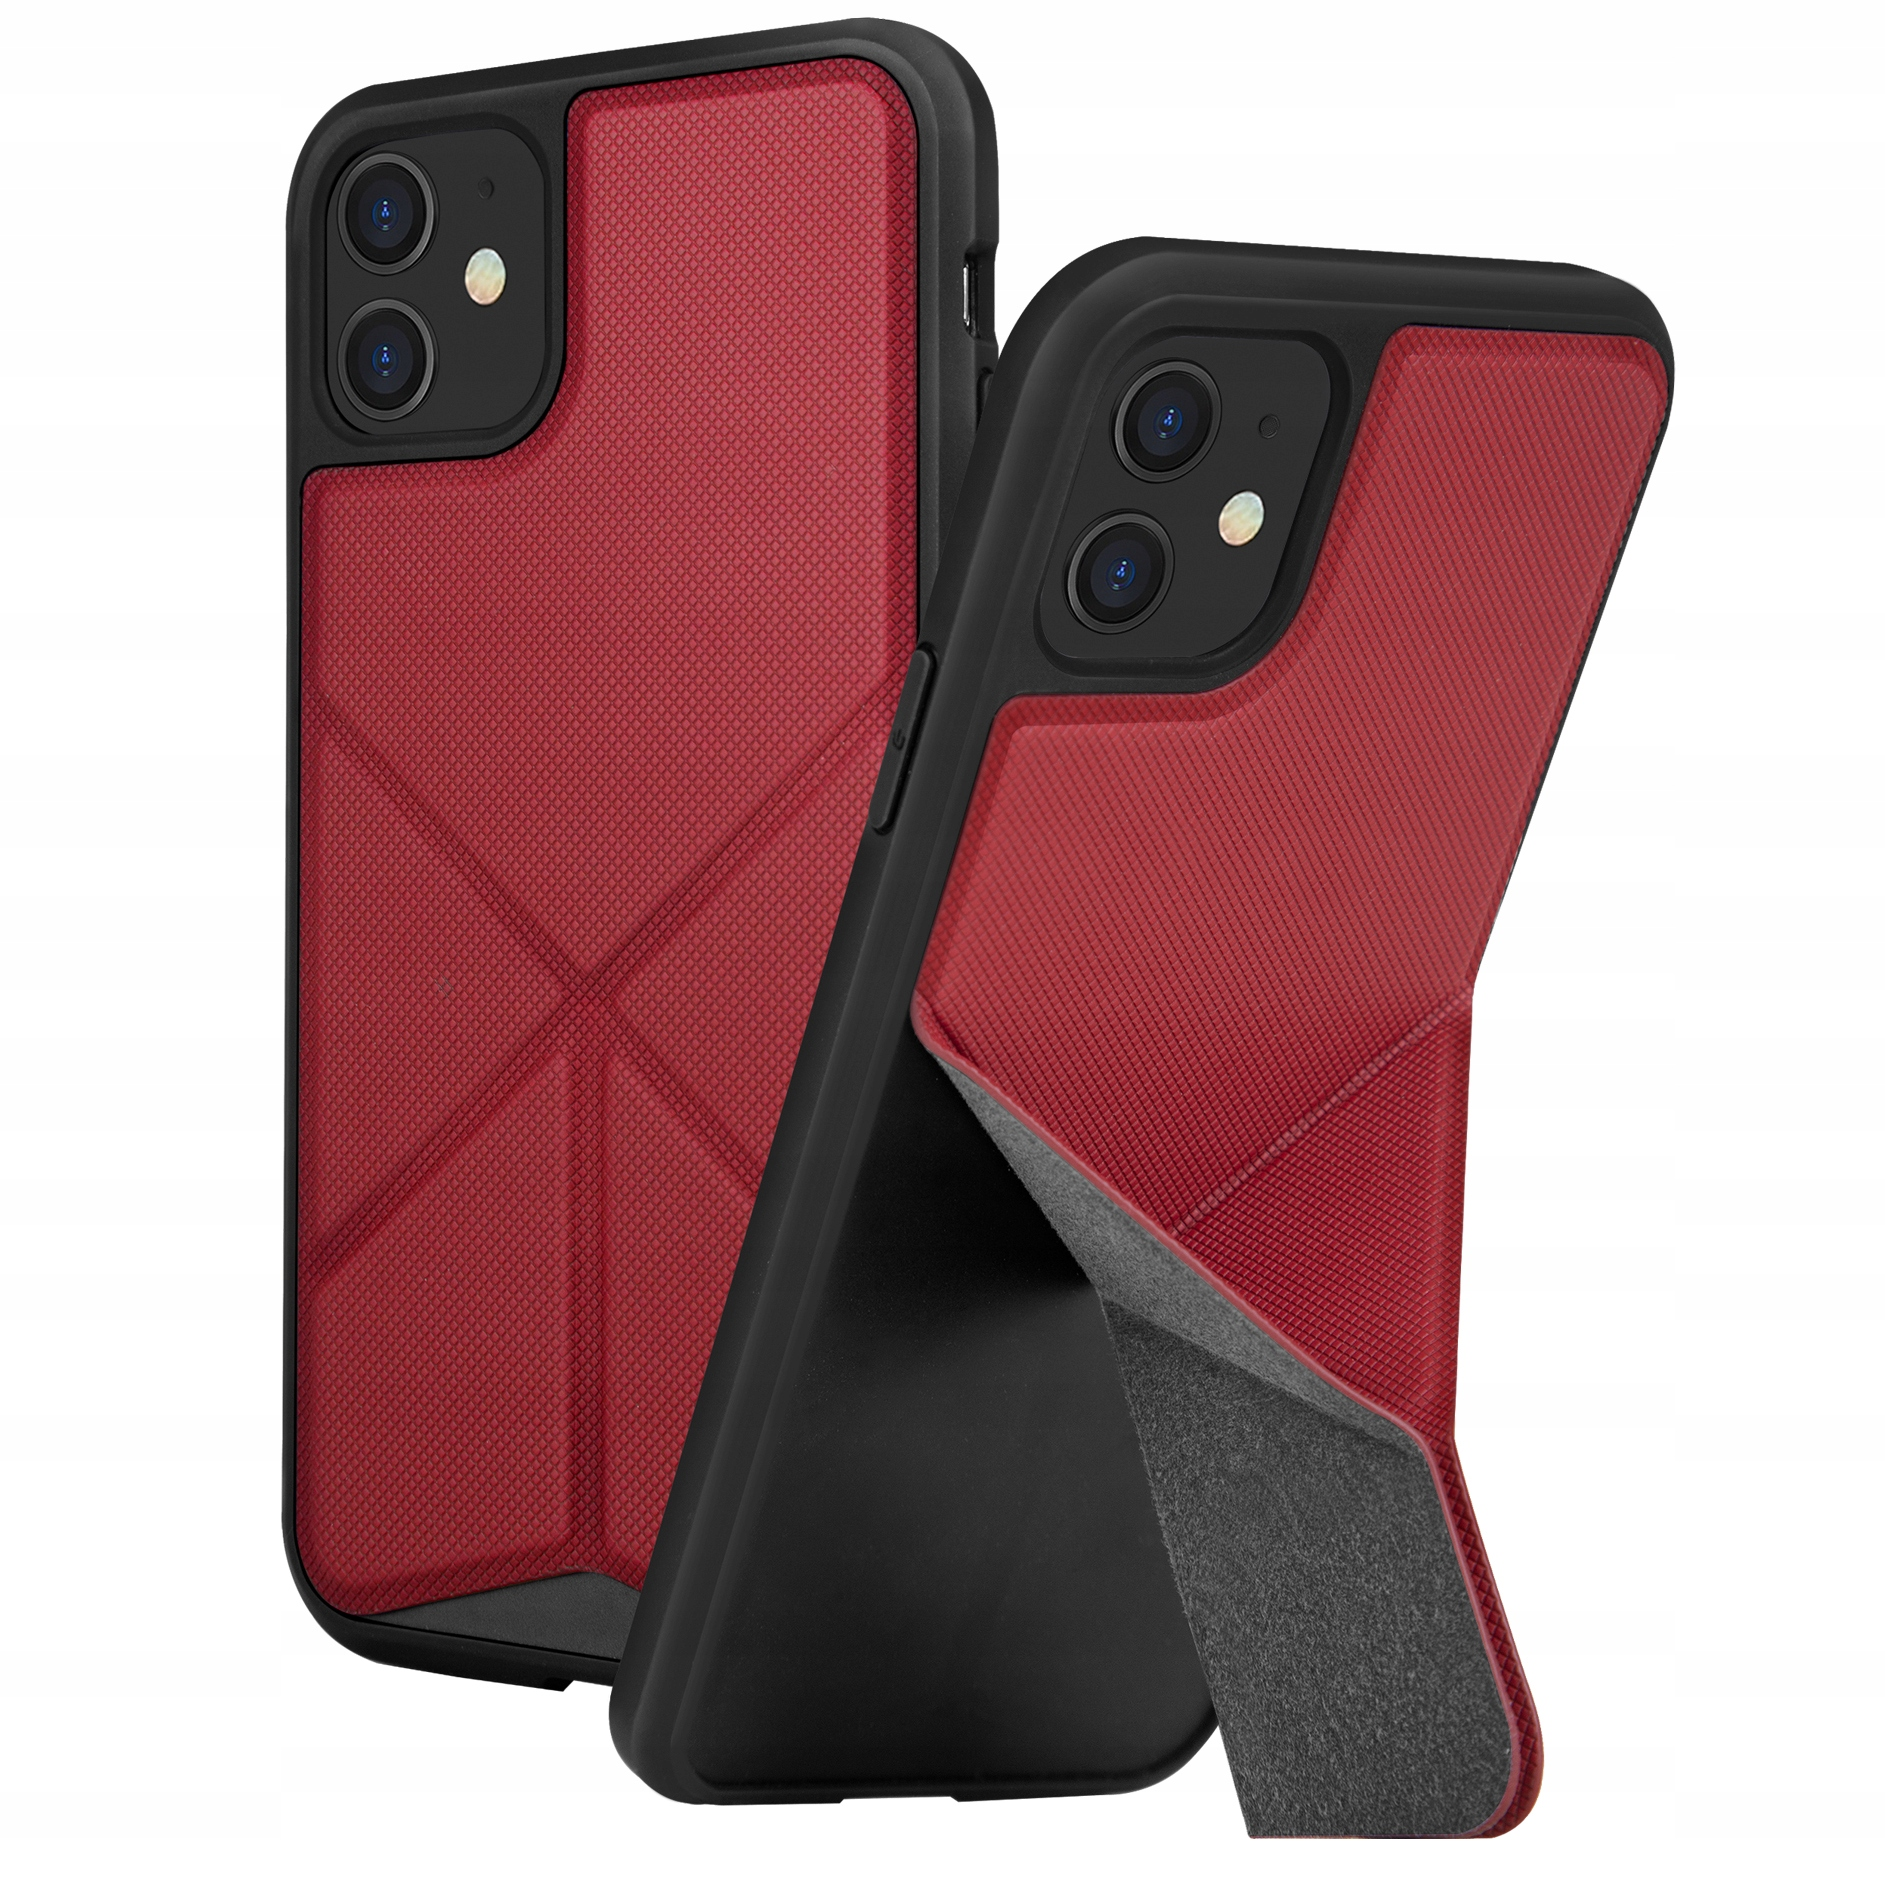 Etui do iPhone 11, Uniq Transforma, futerał, case